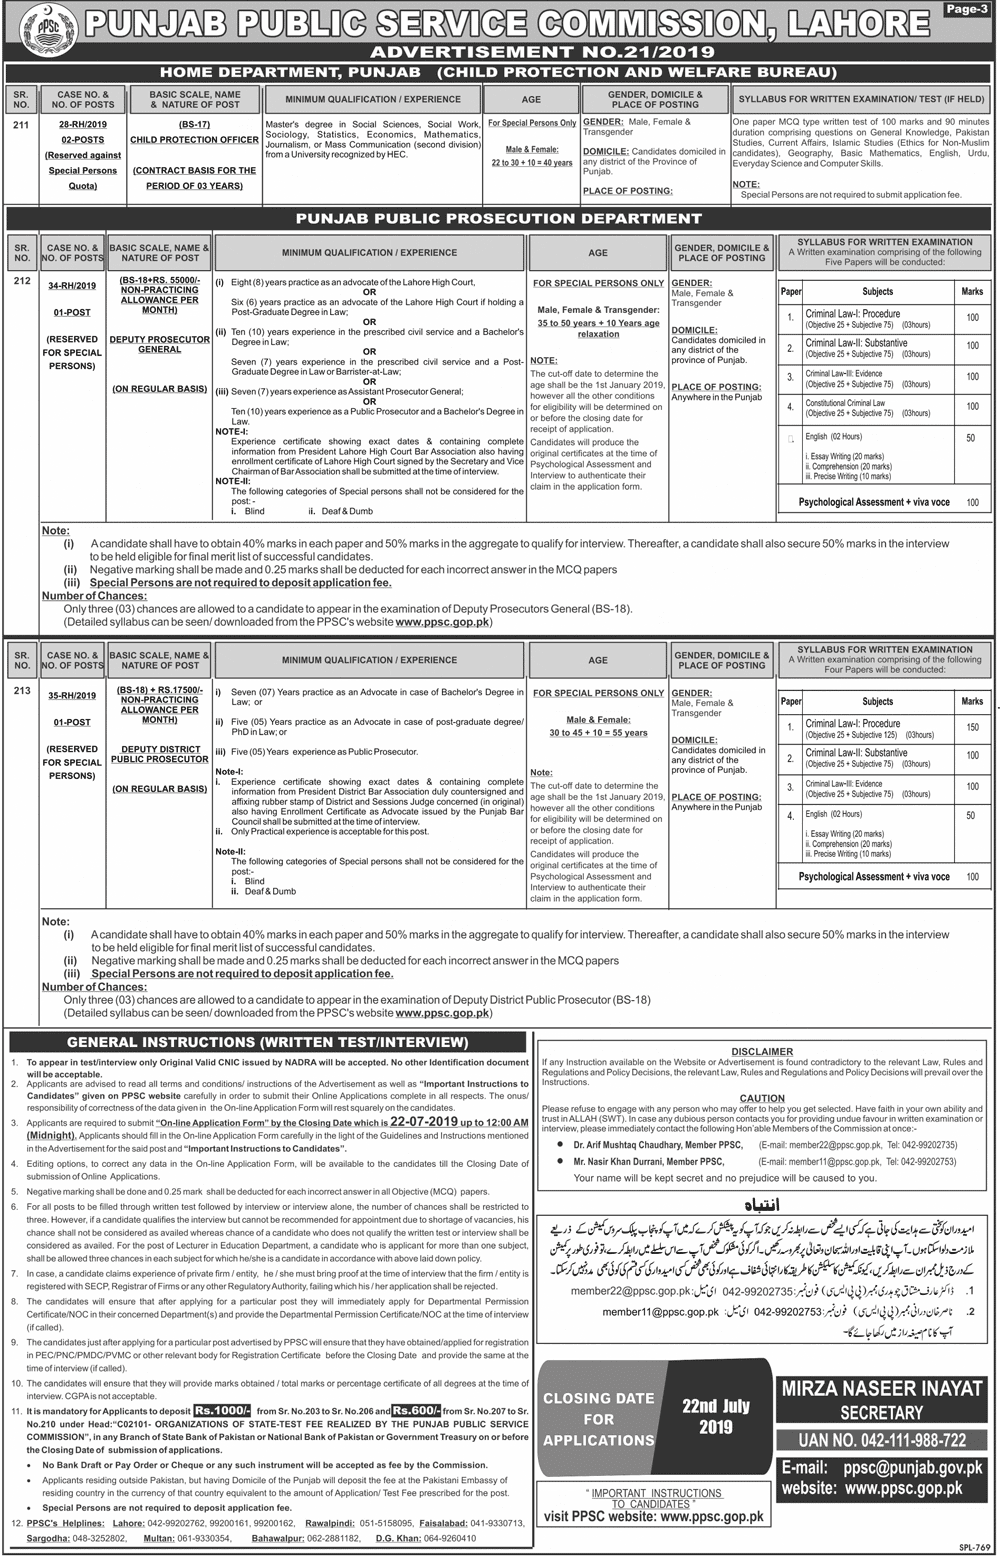 PPSC Advertisement 21/2019 Page No. 3/3